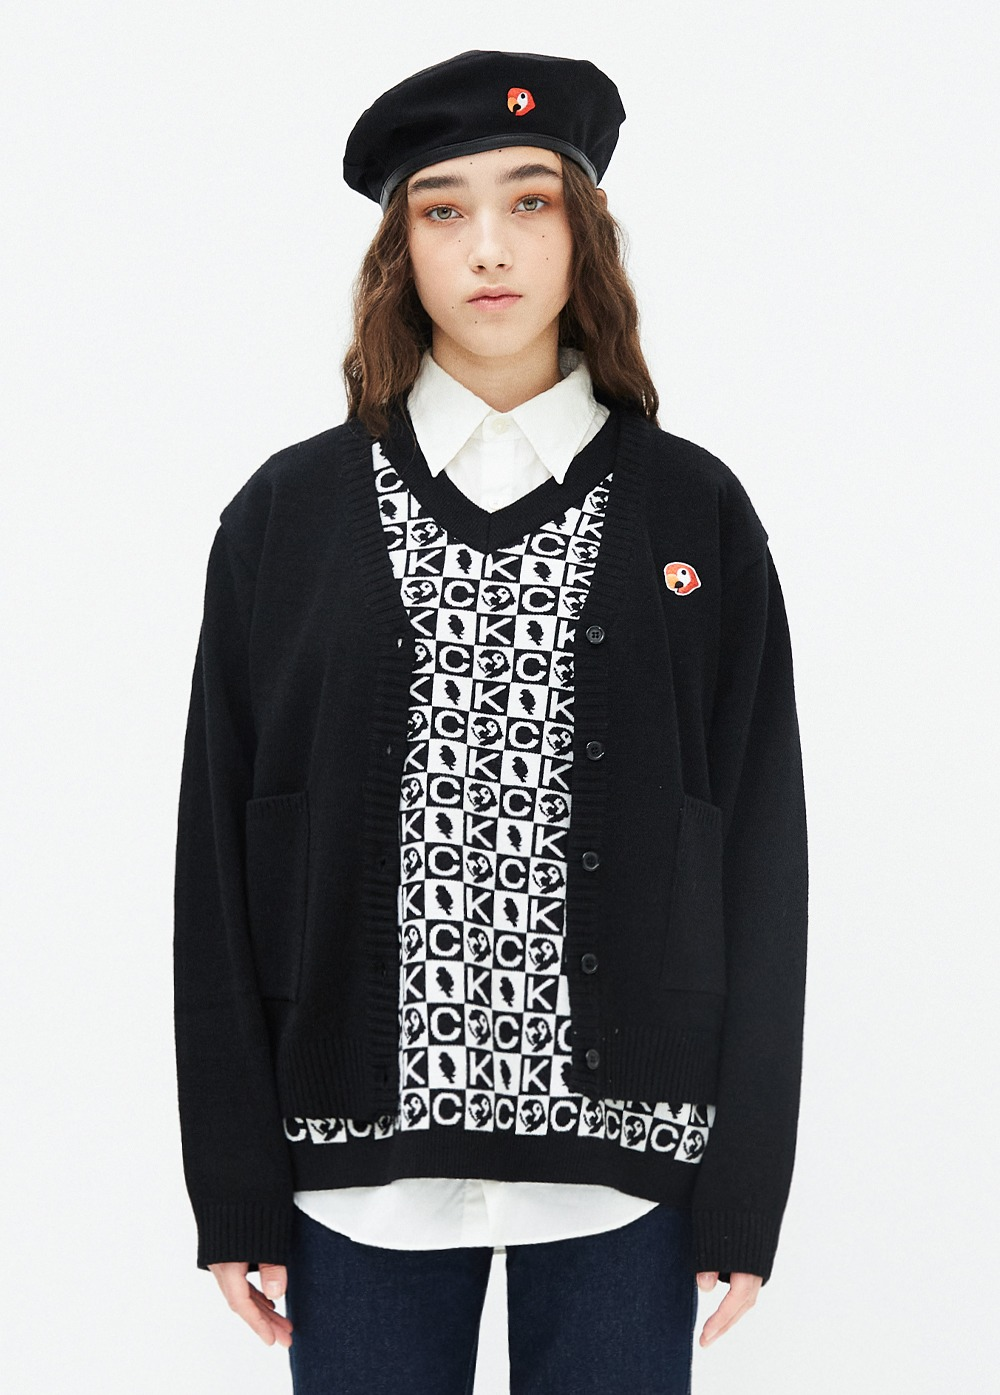 KANCO LOGO CARDIGAN black